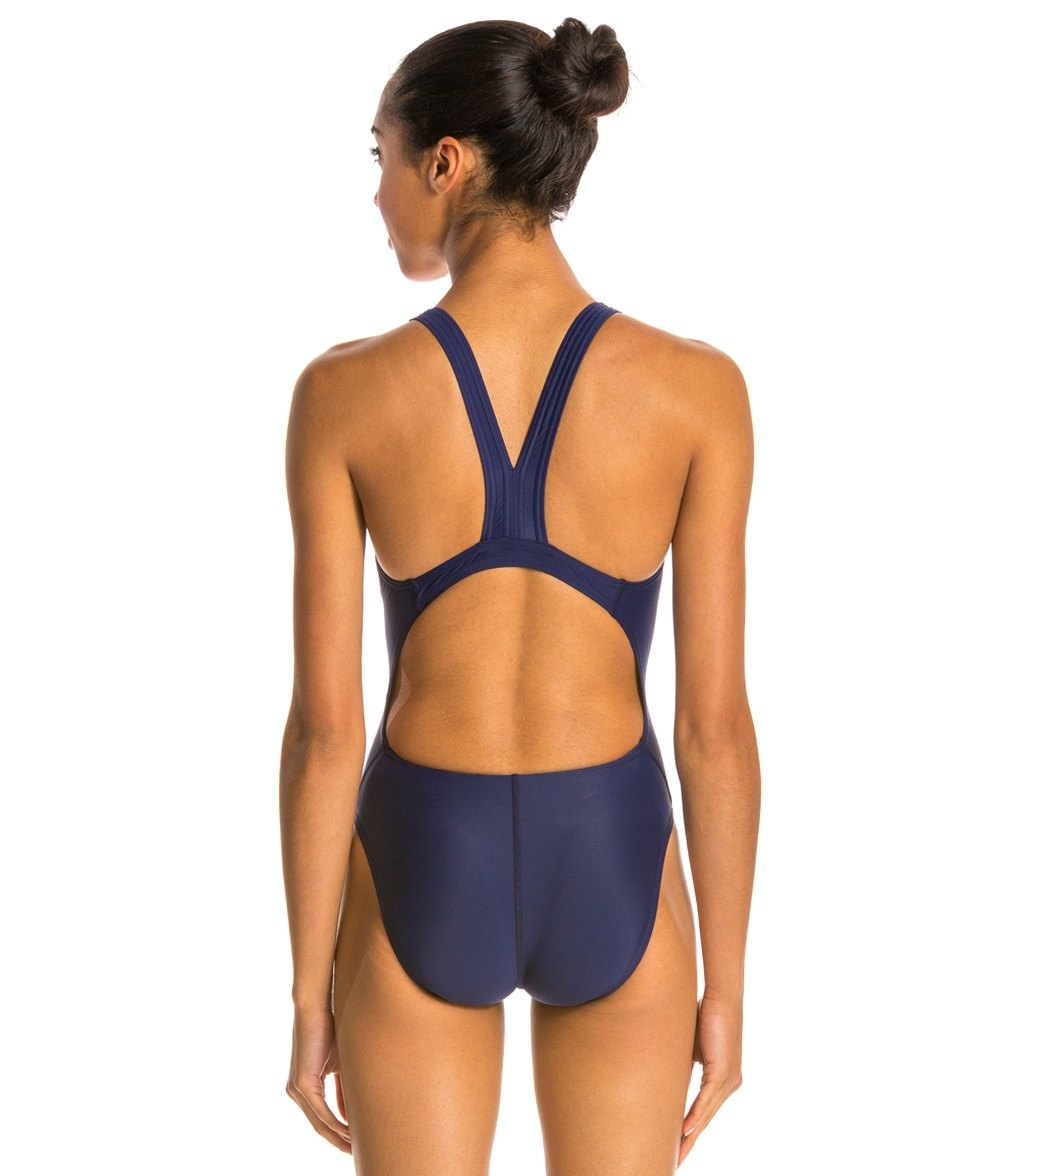 71fe5342ad Speedo PowerFLEX Eco Solid Super Pro Women's Swimsuit at SwimOutlet ...